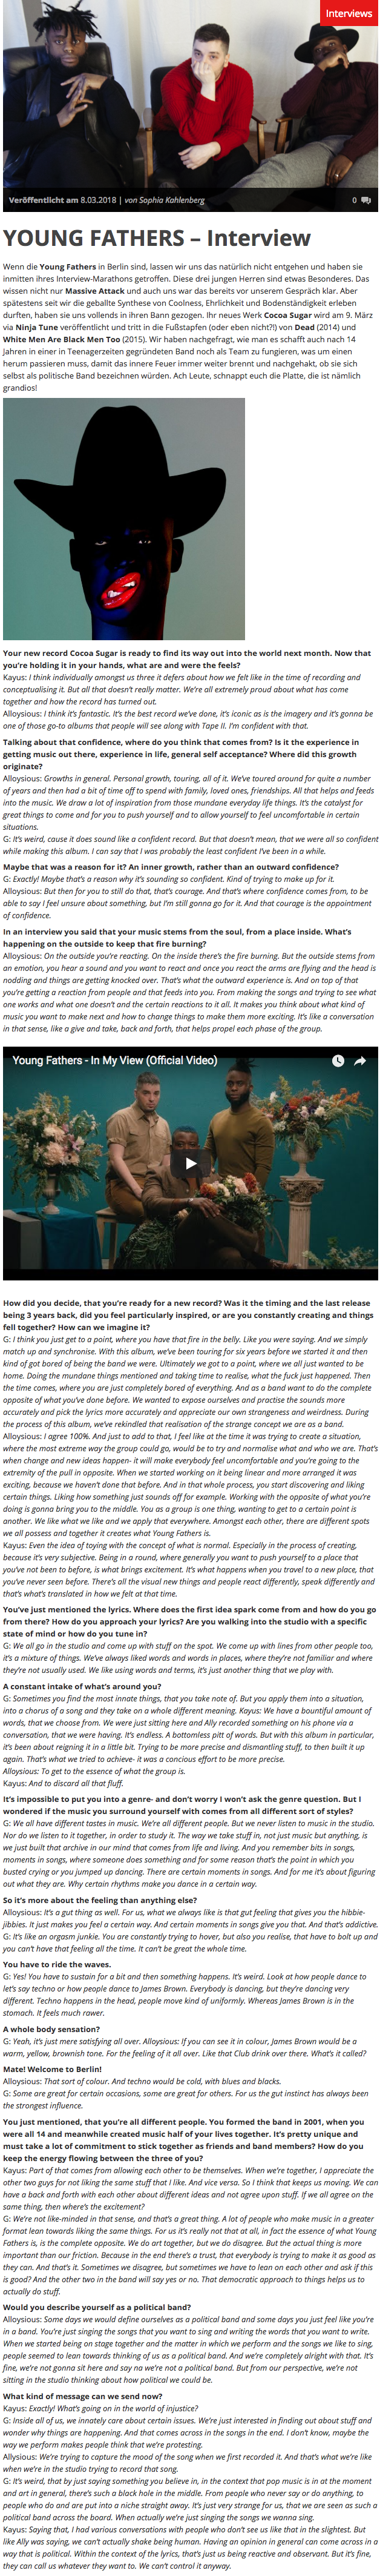 Young_Fathers.png